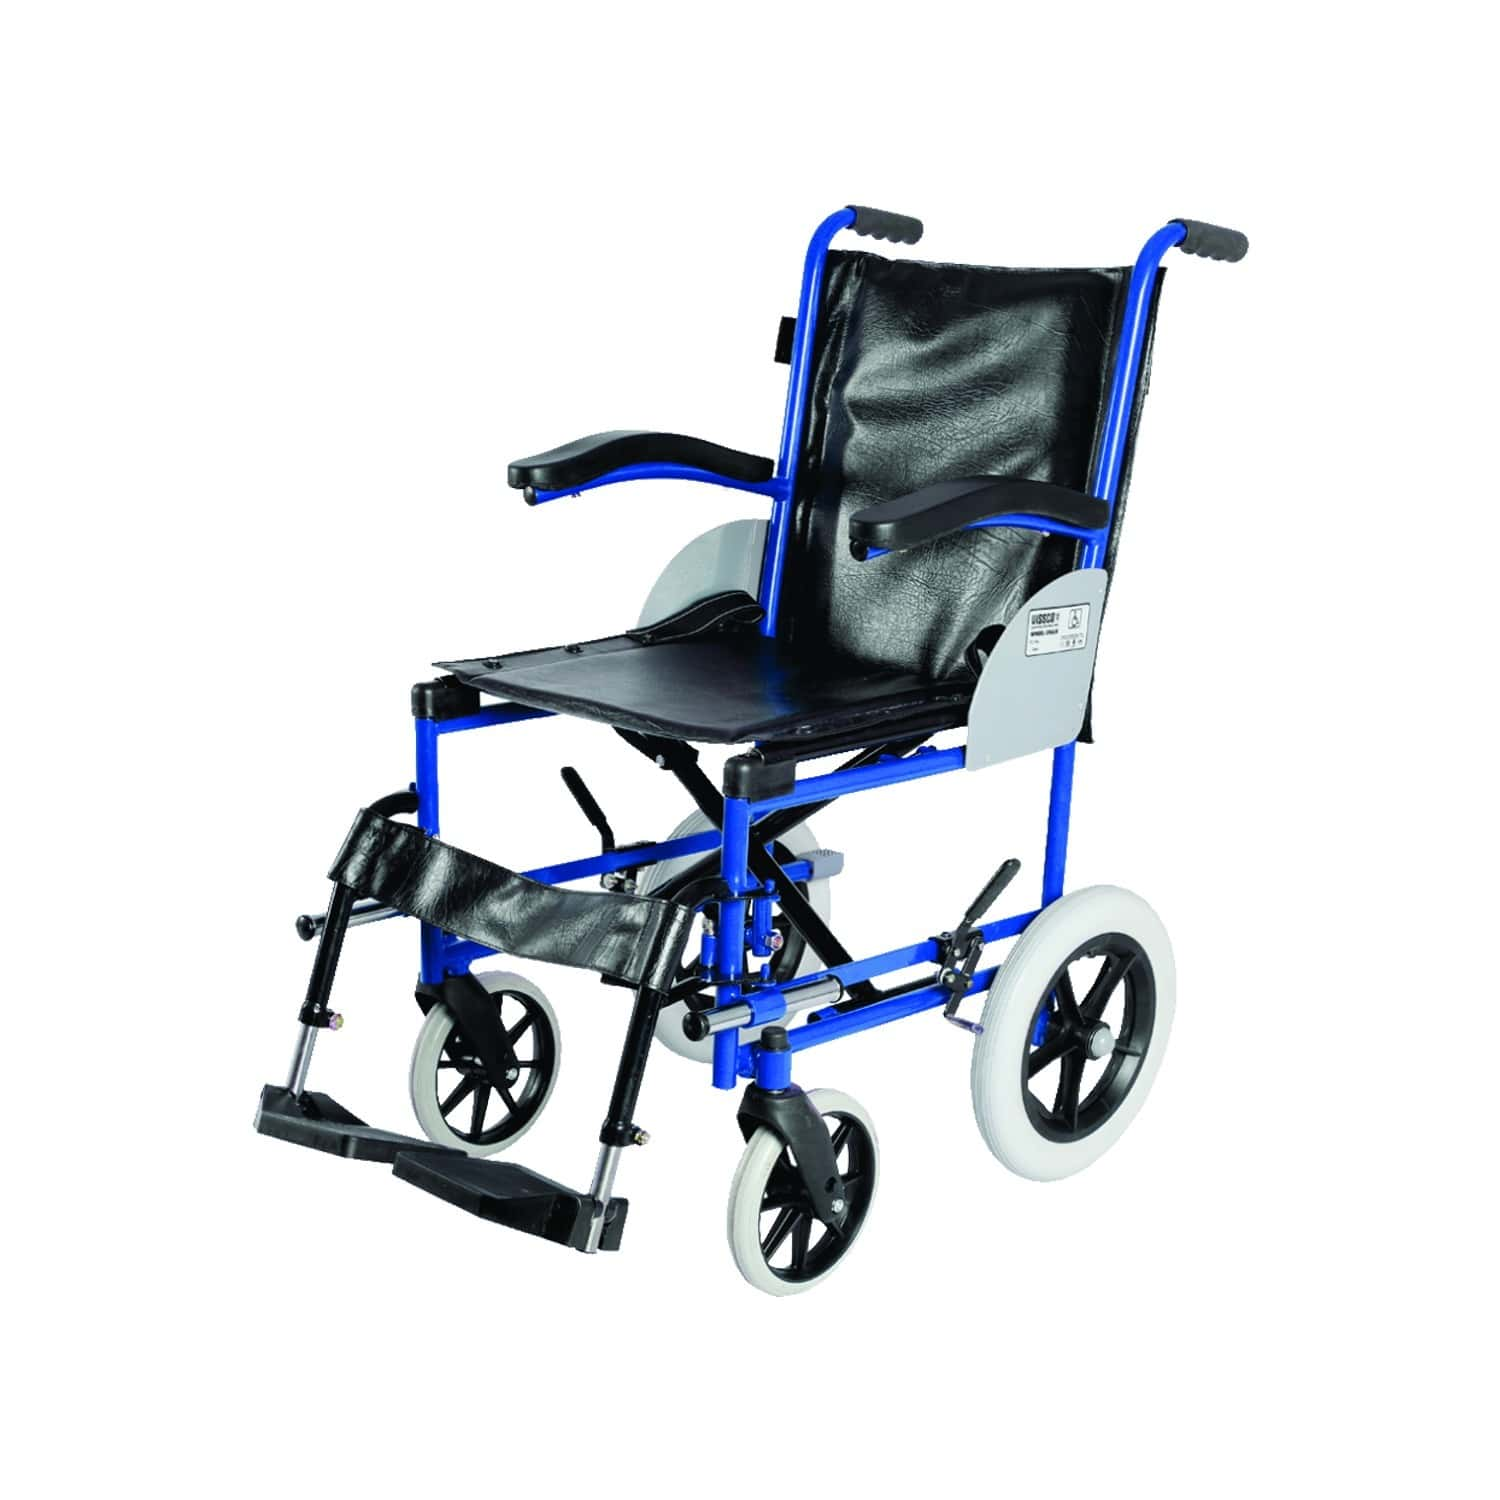 Vissco Imperio Institutional Wheelchair With 300mm Rear Wheels